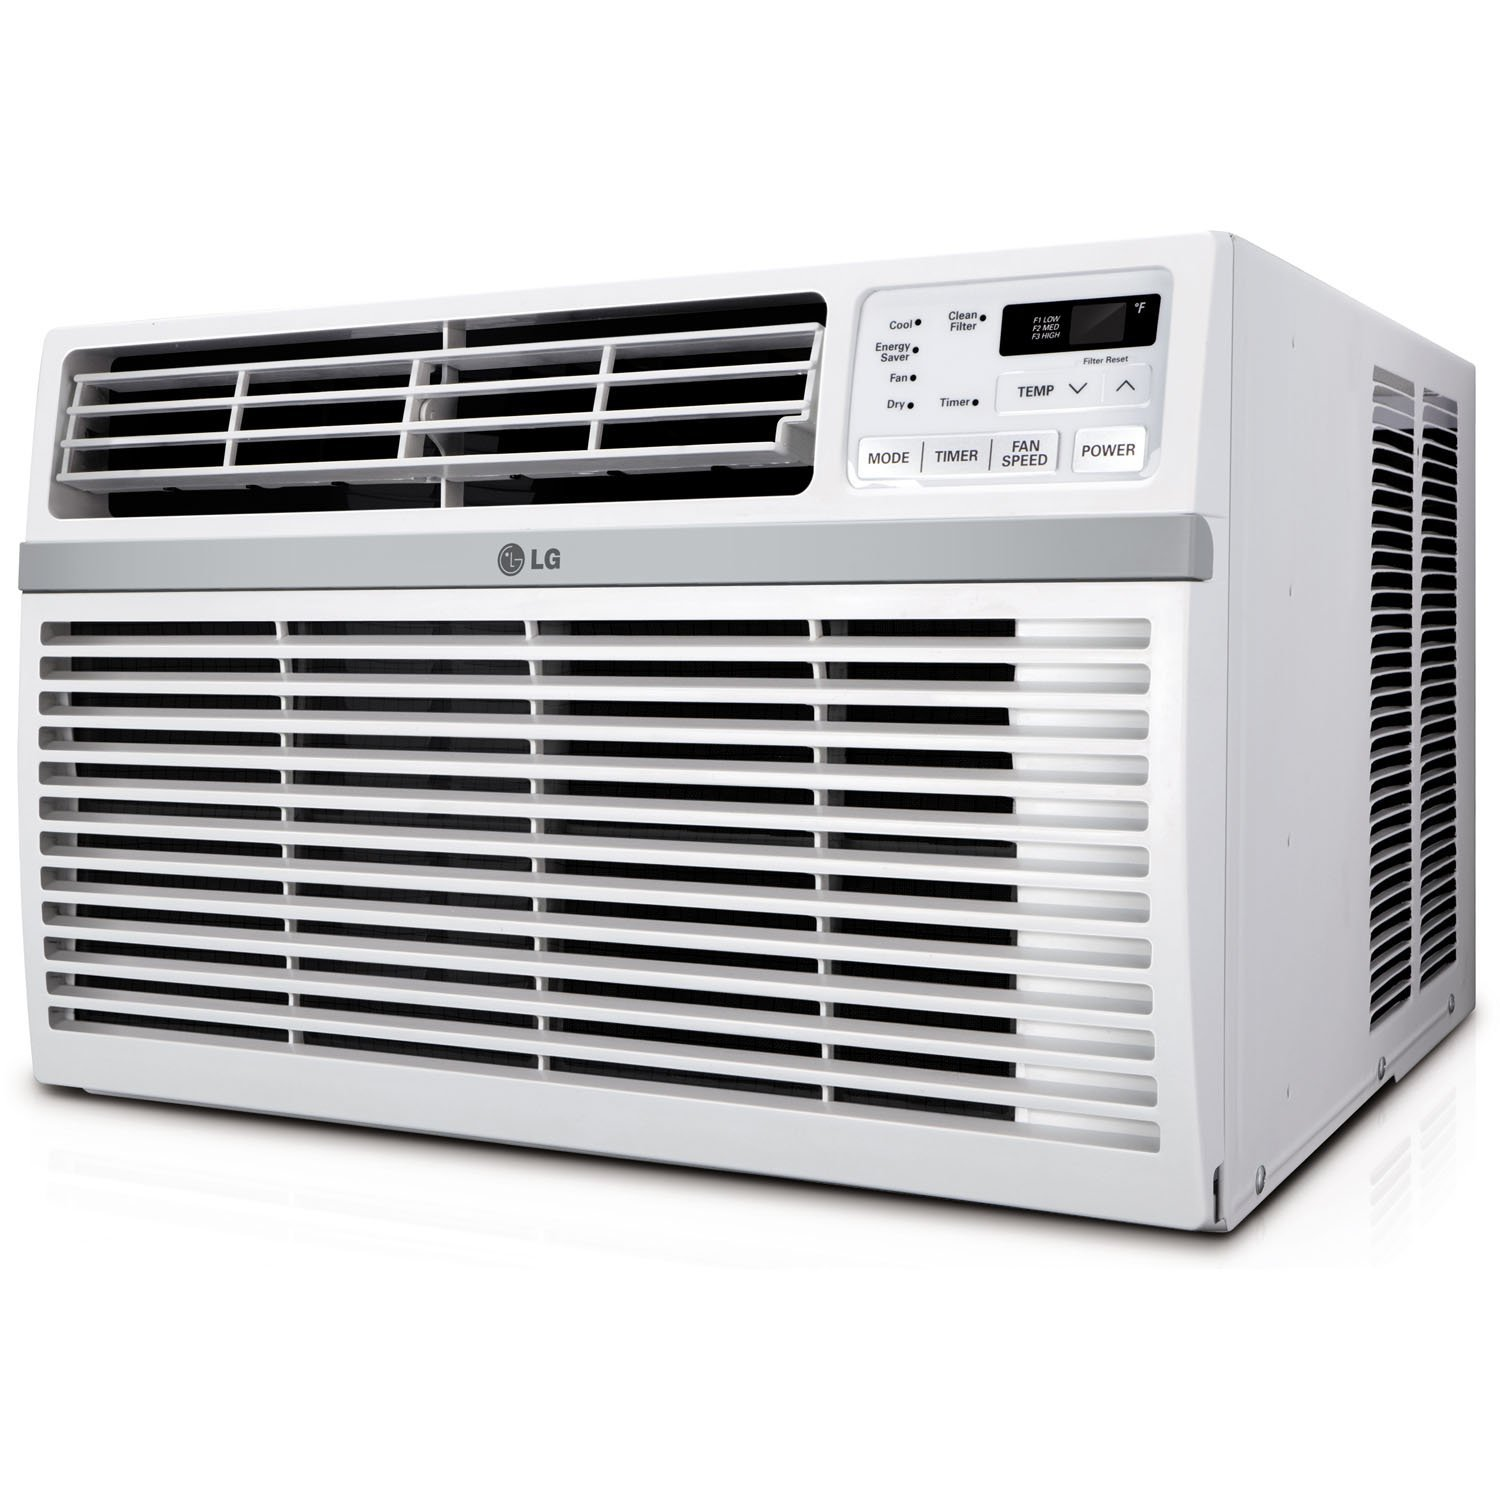 Lg Lw1814er 18000 Btu Window Air Conditioner 230 Volt Energy Star Elenco Snap Circuits Lights Walmartcom Factory Reconditioned